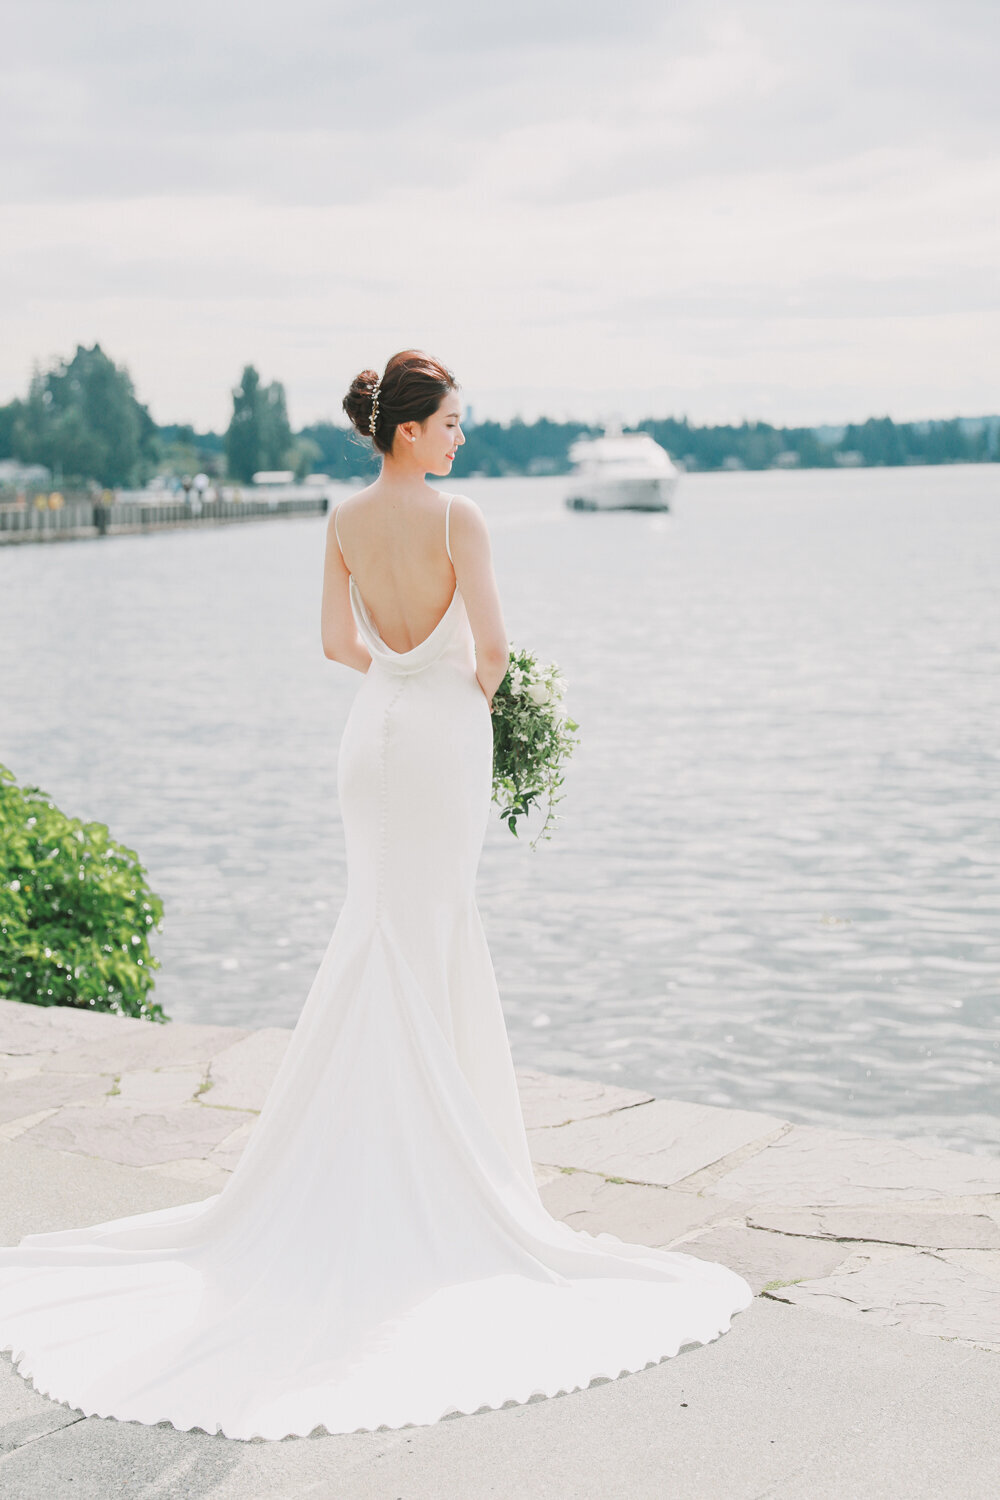 Kirkland-washington-wedding-planner-leigh-and-mitchell-waterfront-wedding-bridal-portrait-inspo